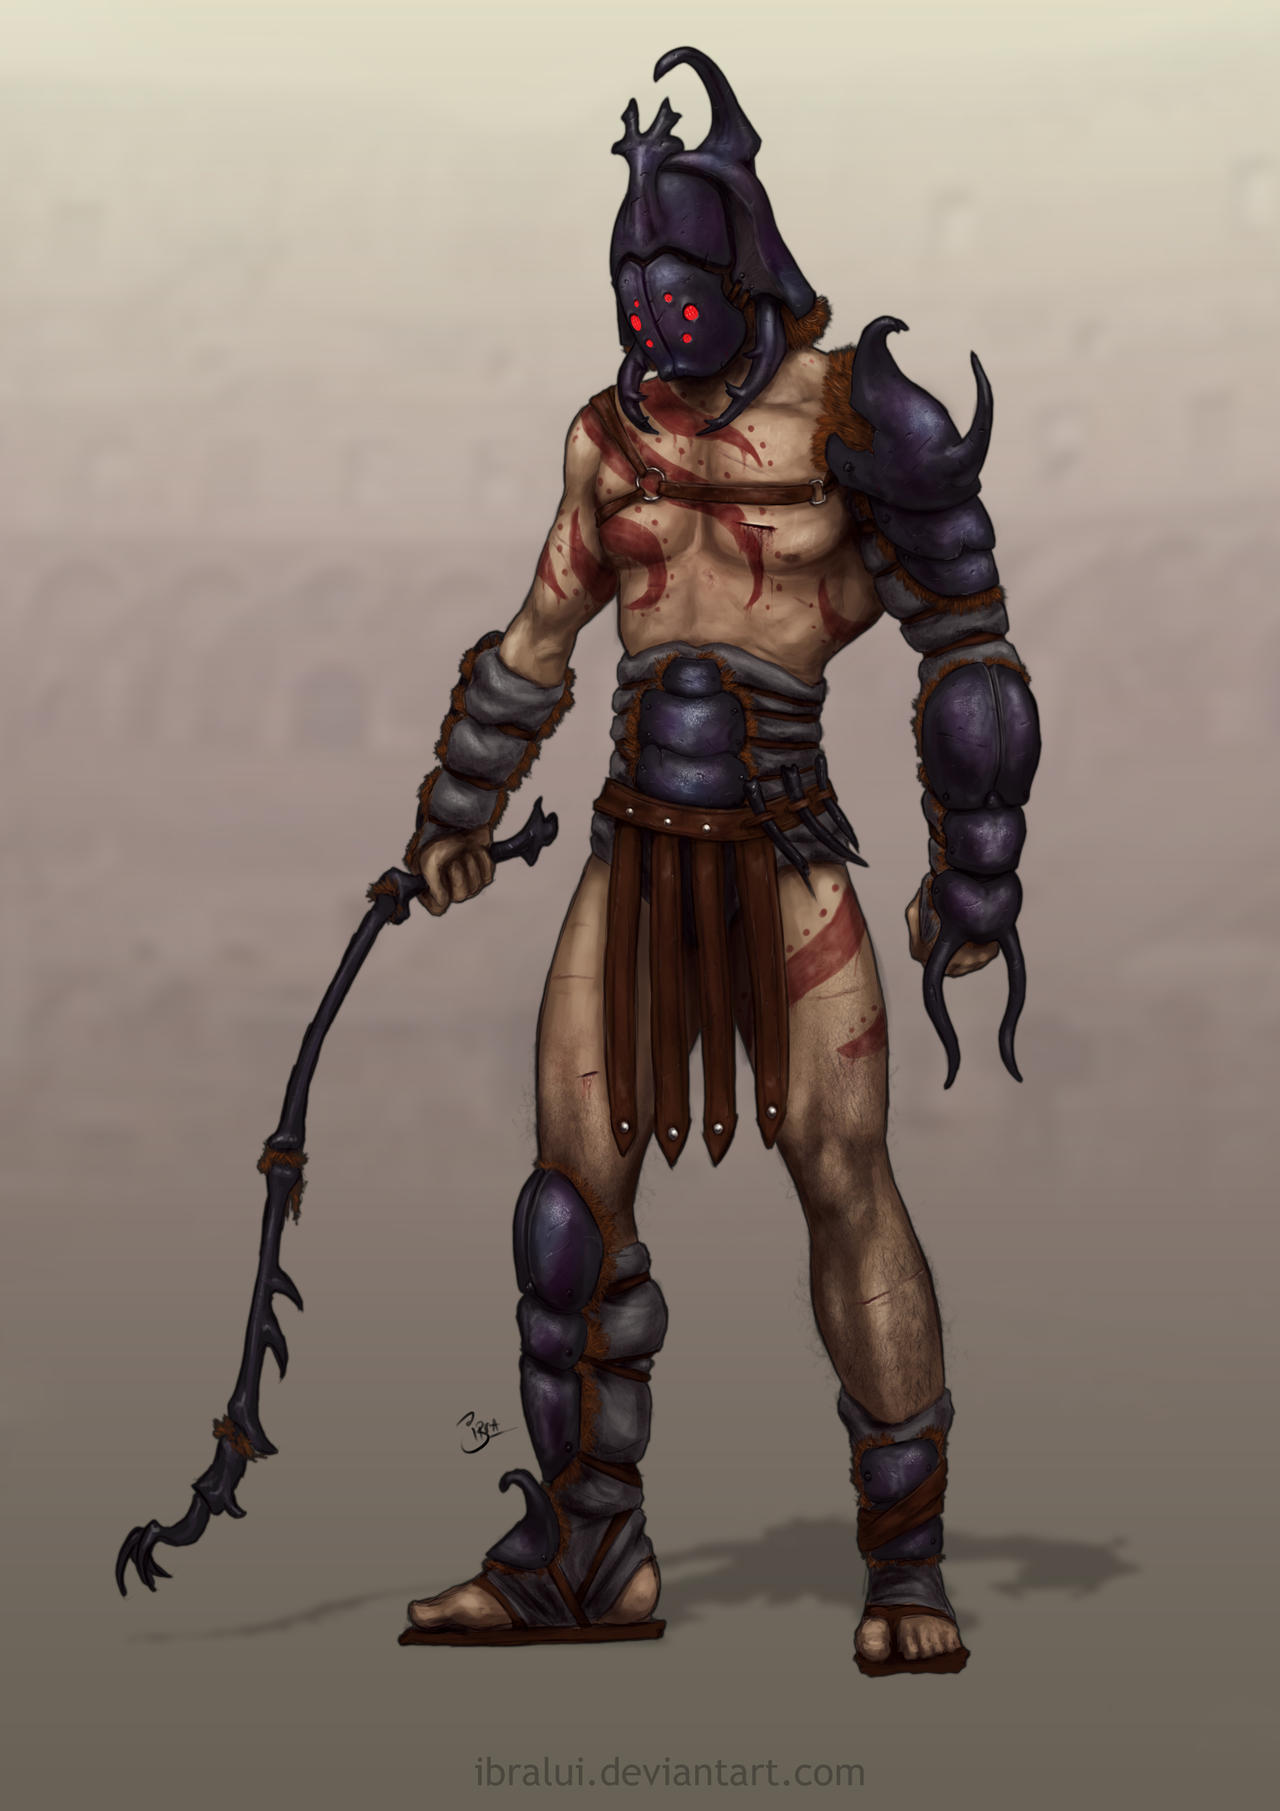 Character Design Challenge Gladiator : The gladiator beetle character concept by ibralui on